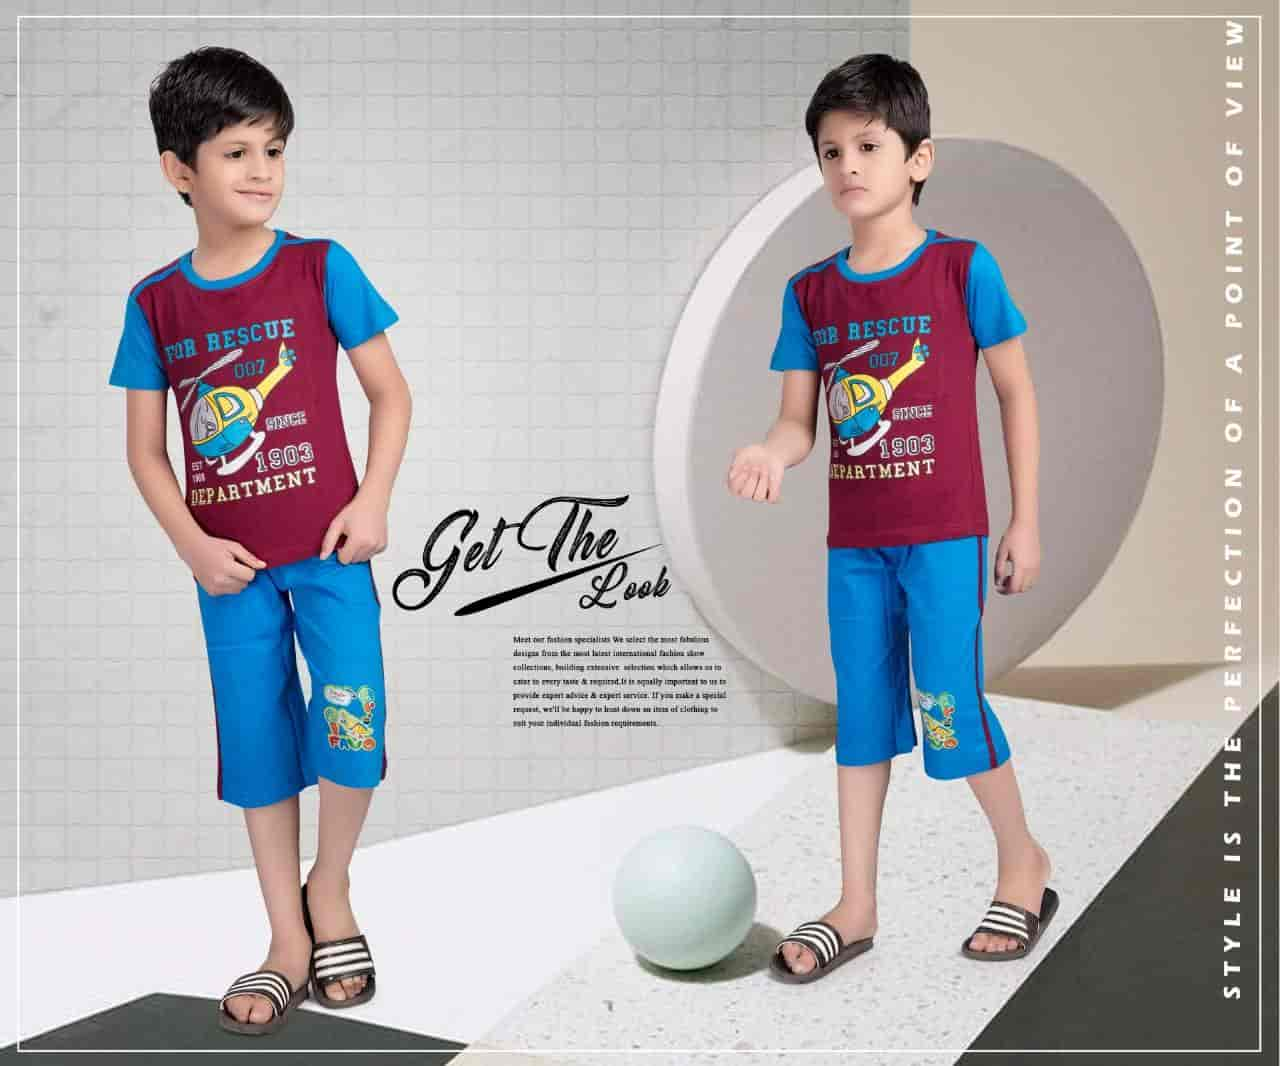 Spice Knit Wear, Mettupalayam - T Shirt Manufacturers in